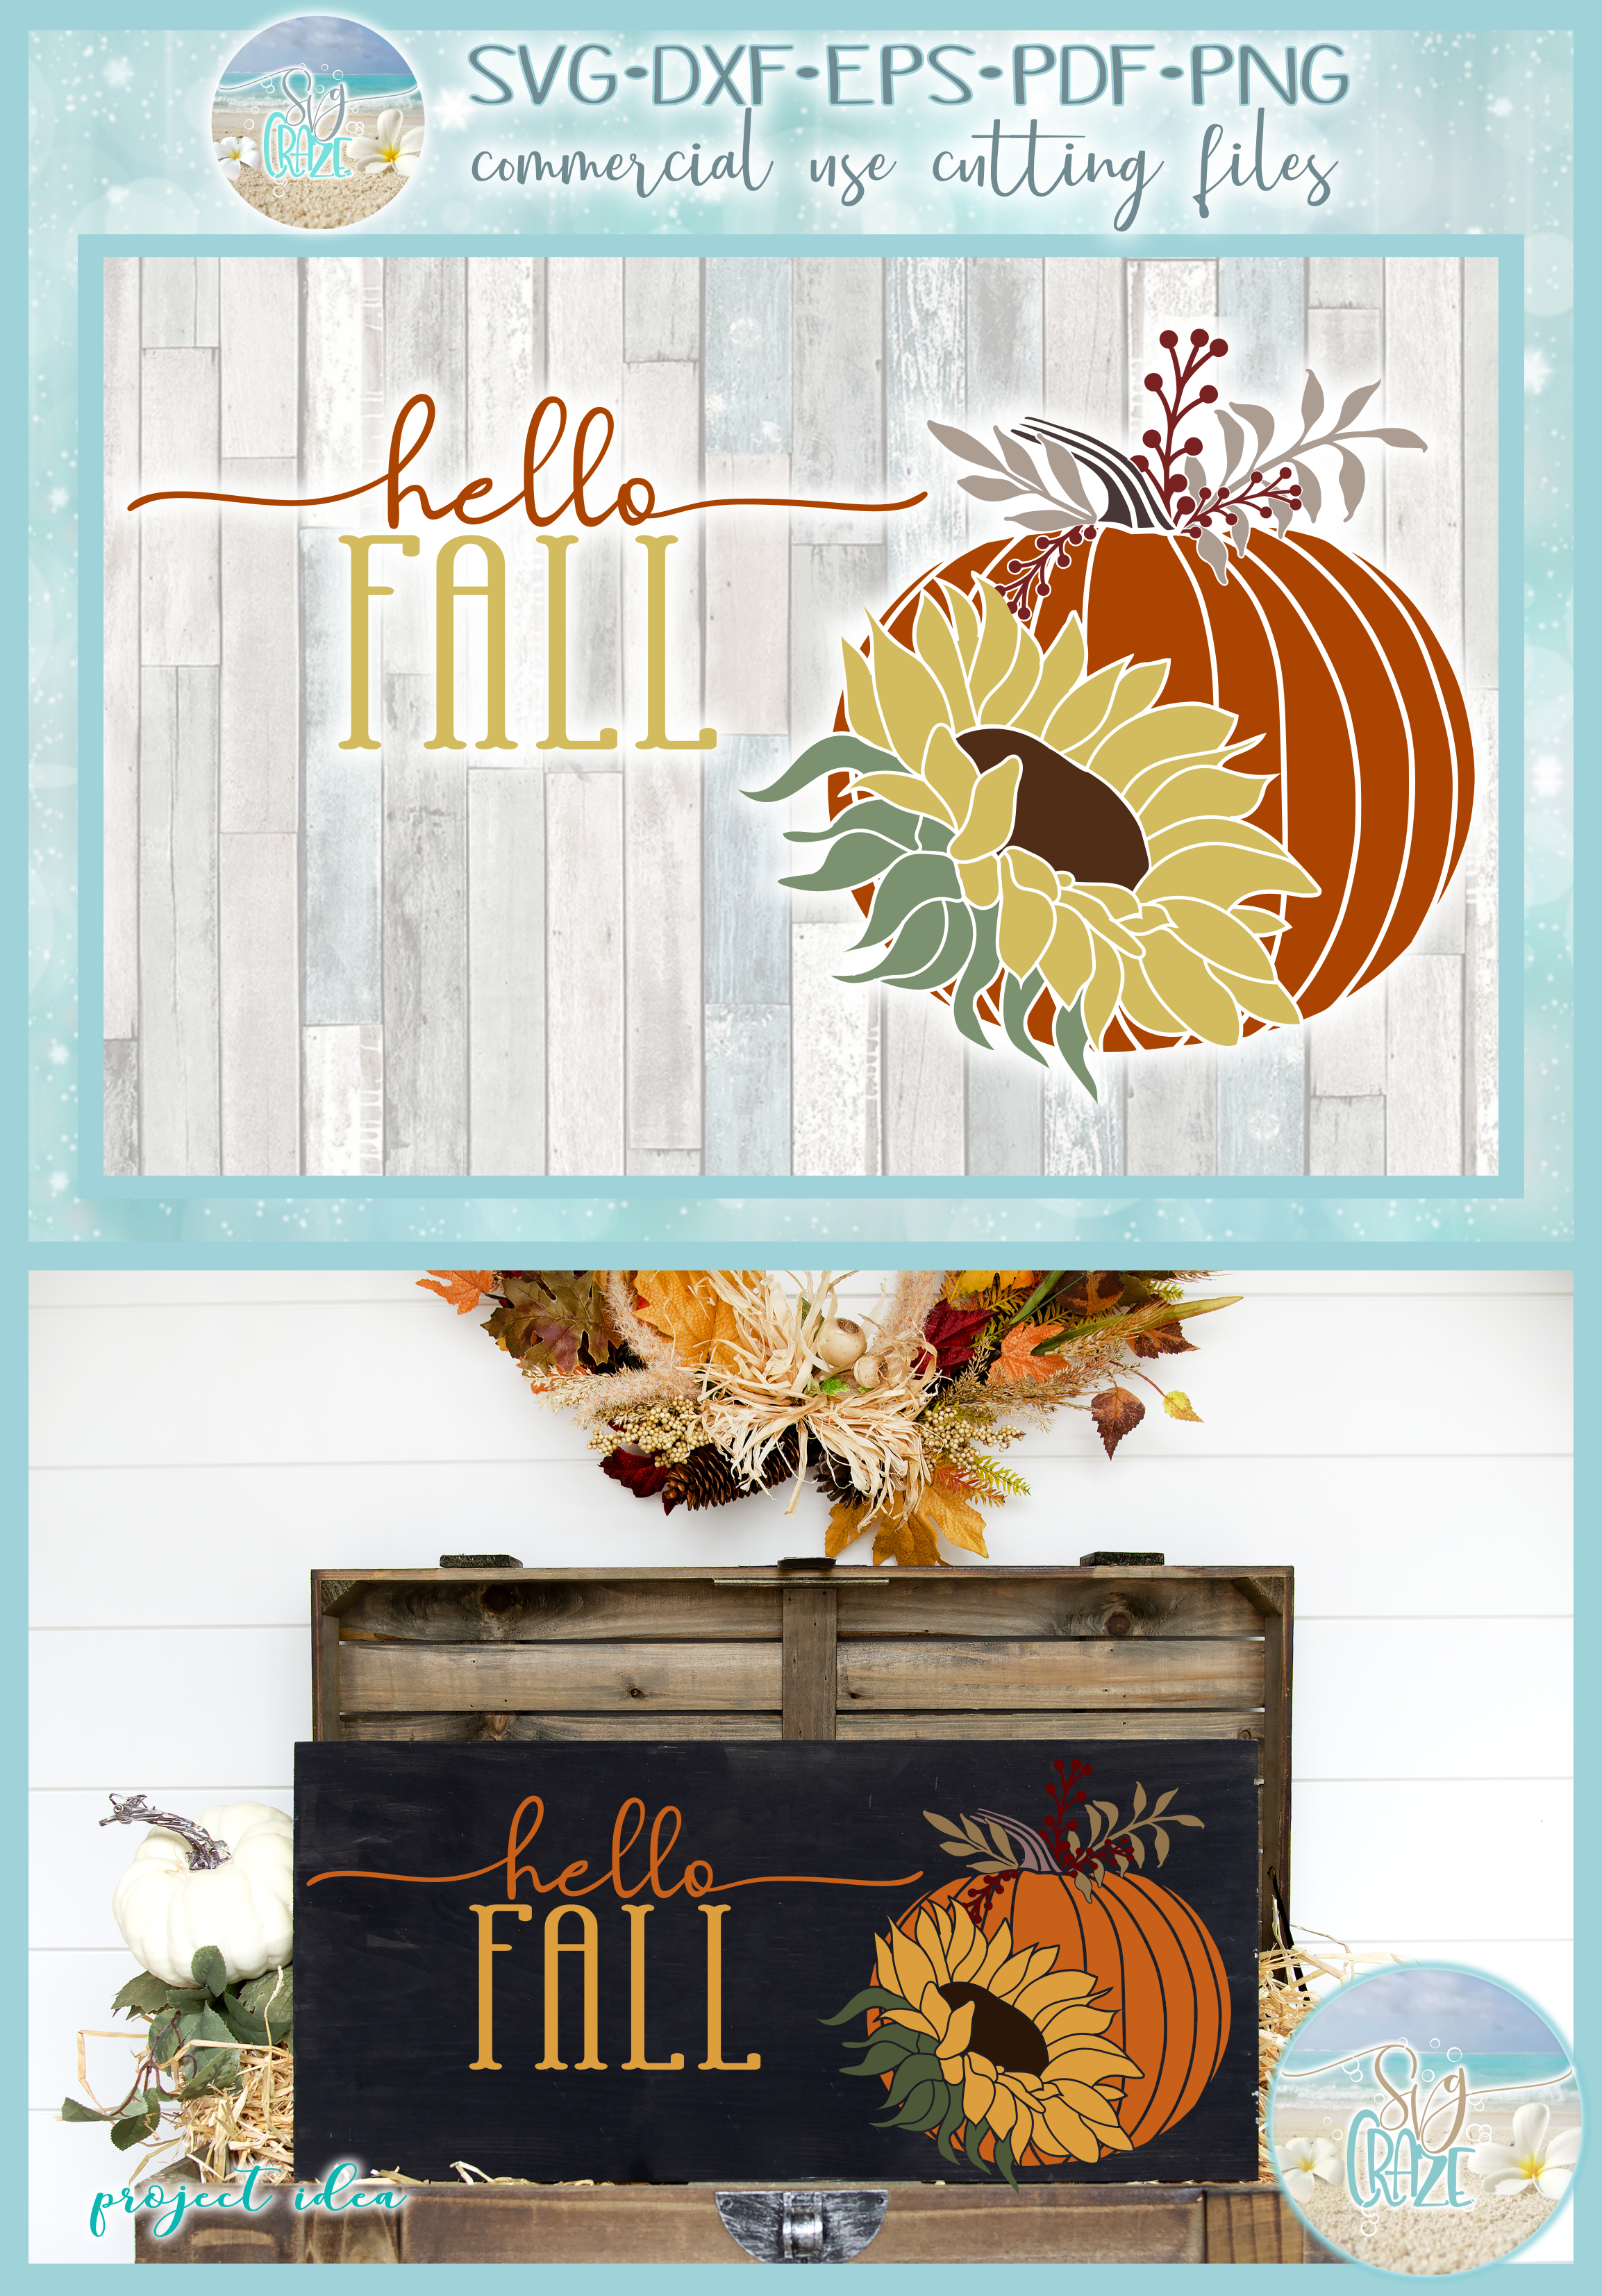 Hello Fall Quote With Pumpkin and Sunflower SVG example image 4